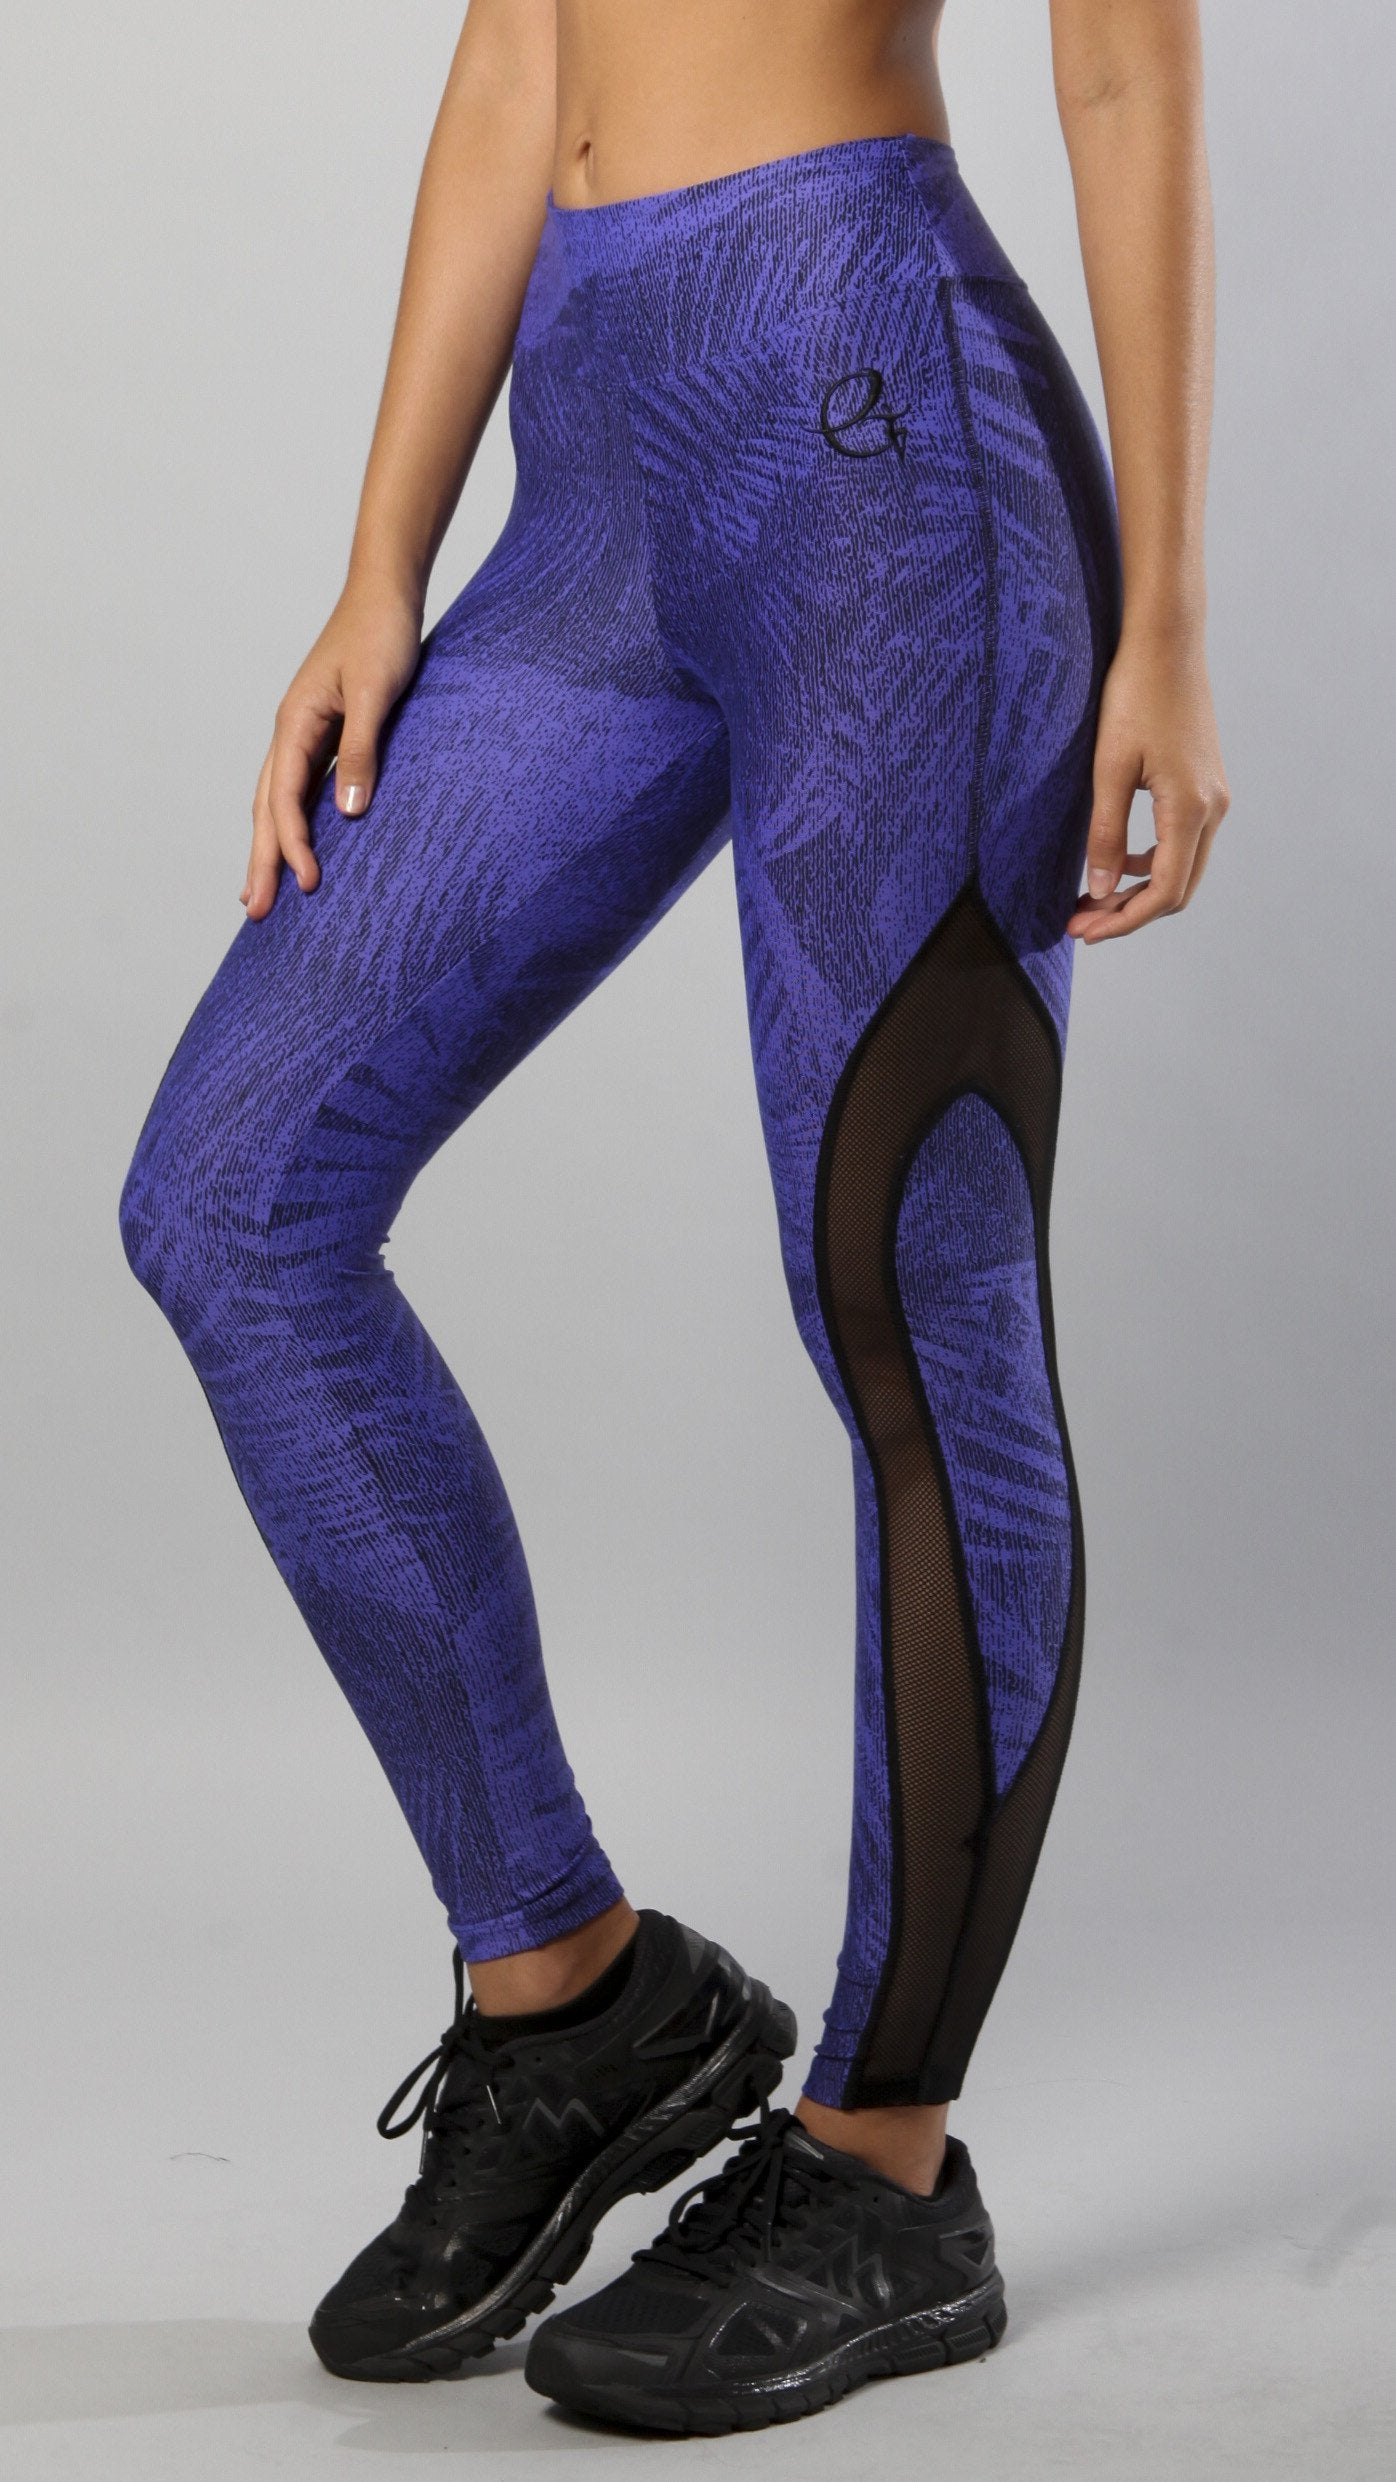 Designer Blue and Black Legging L7005 - Equilibrium Activewear - Image 5